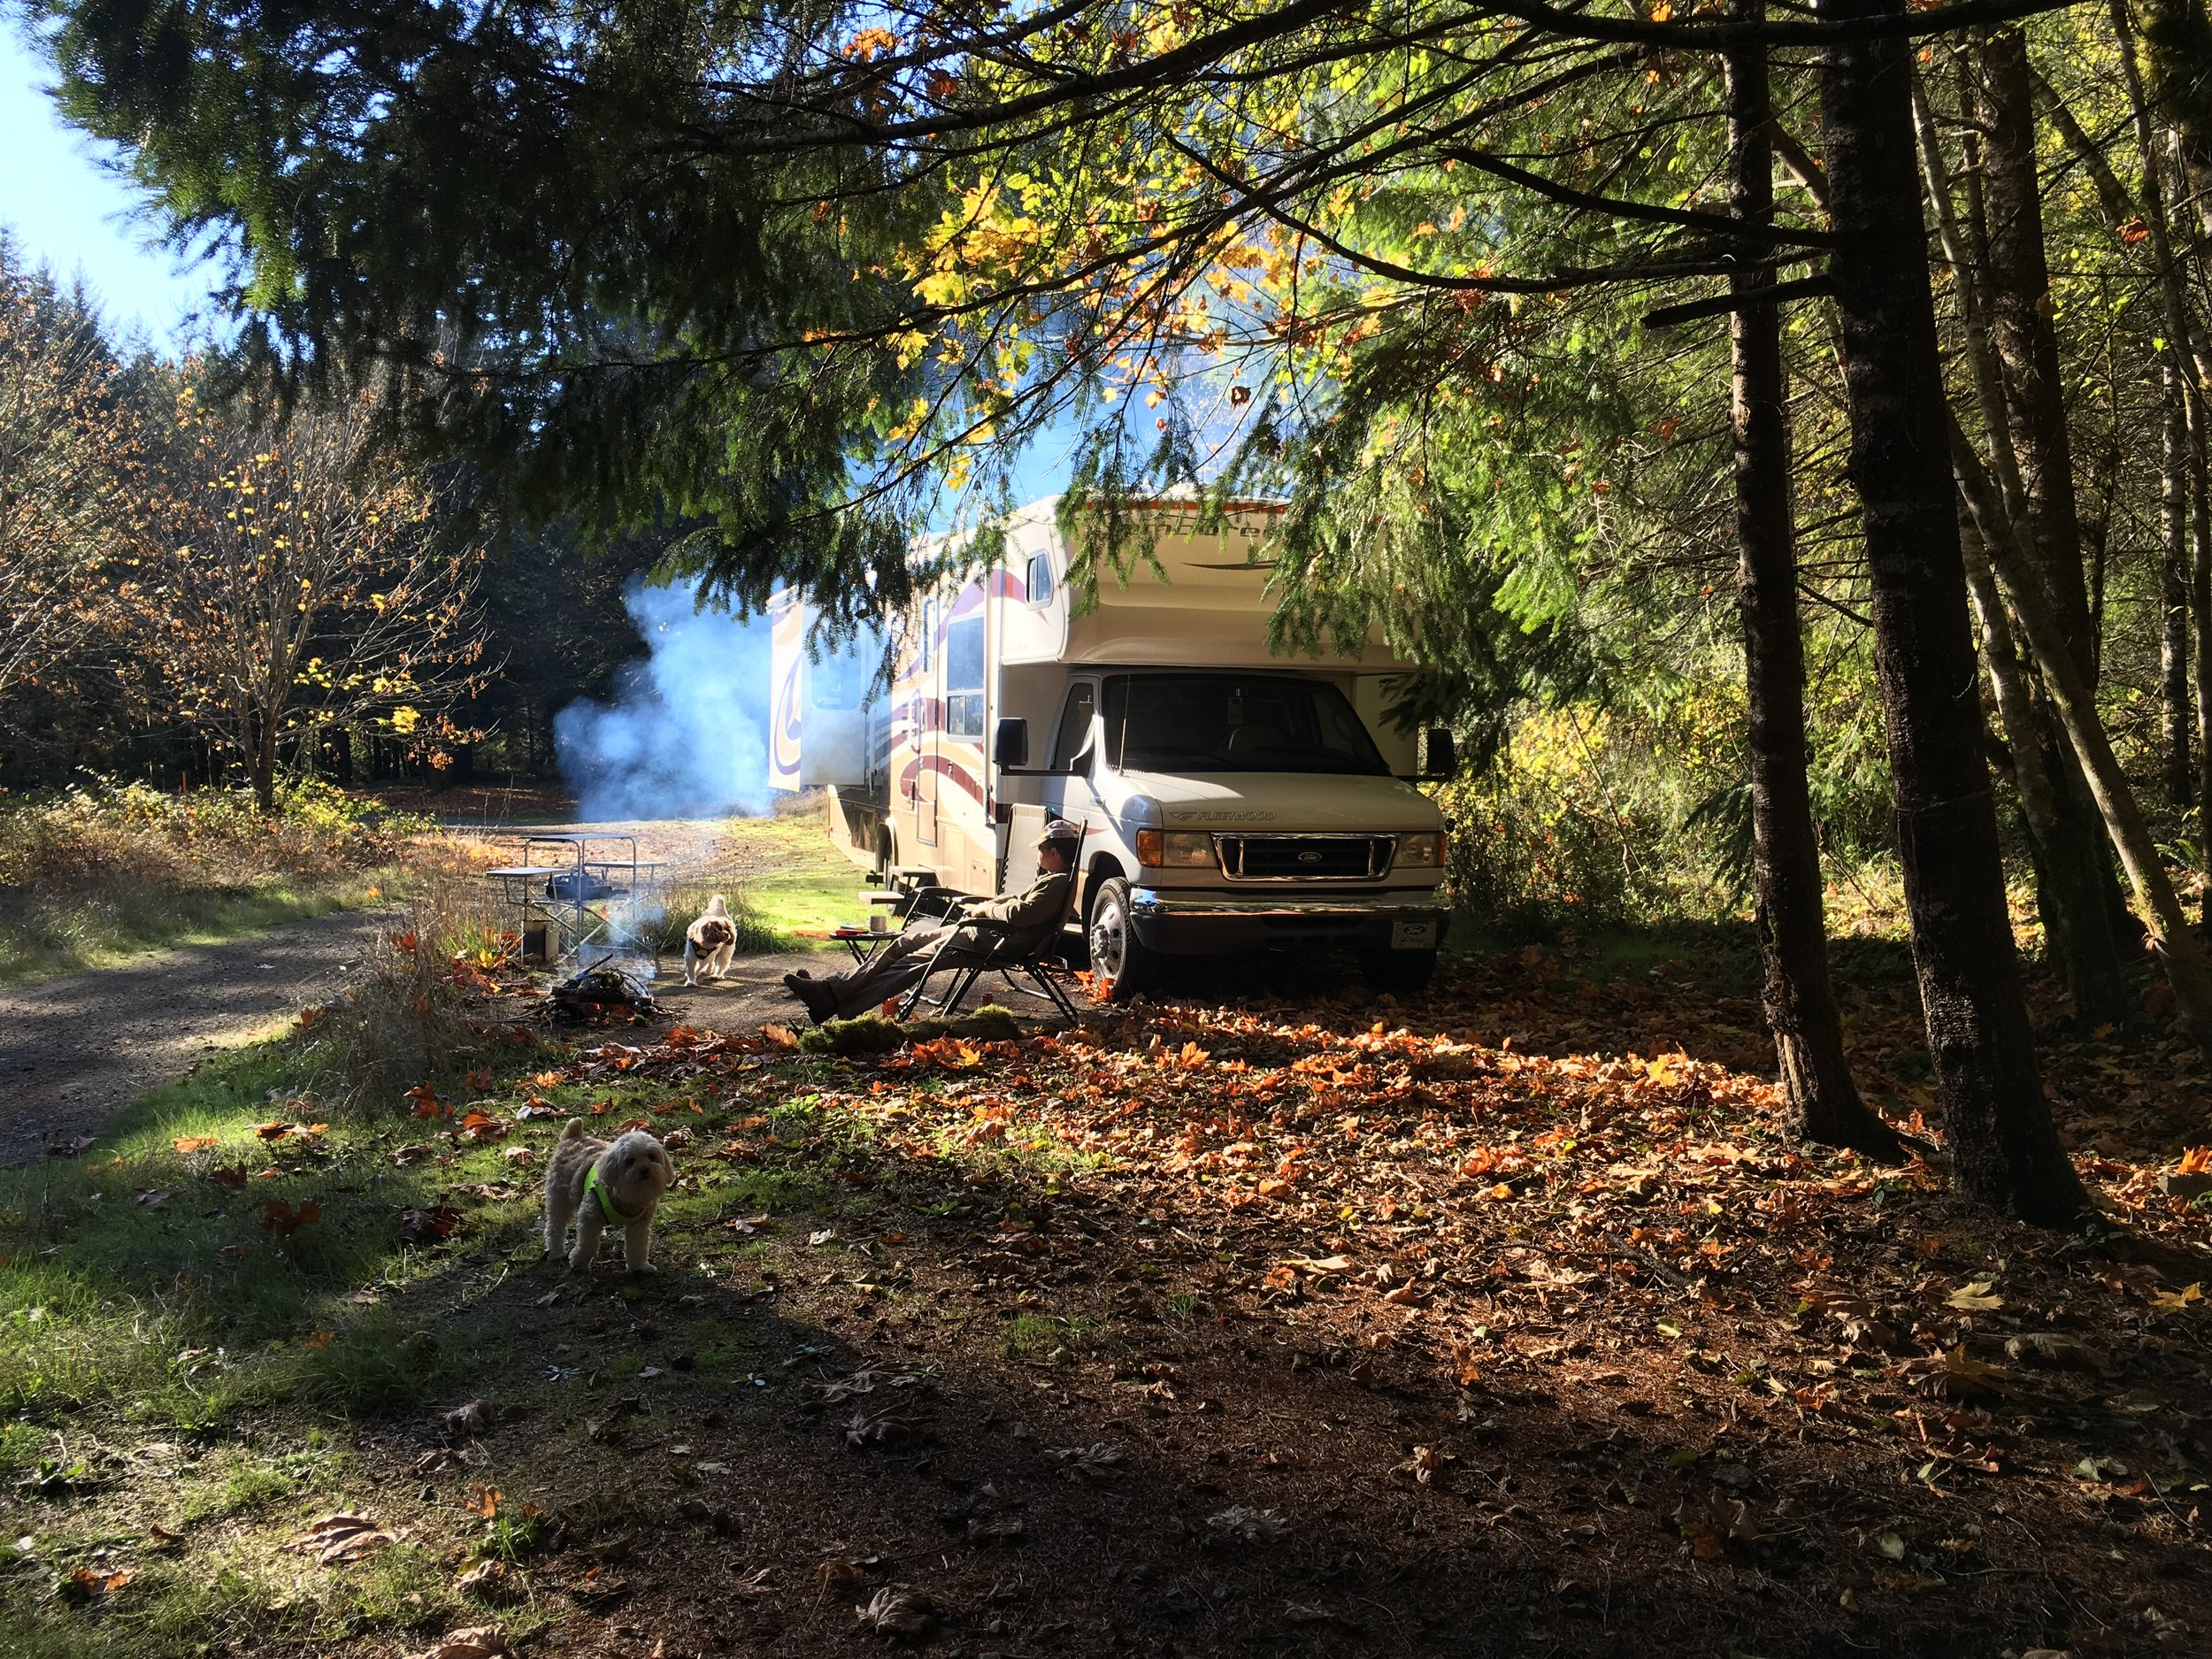 Boondocking in our 31' Motorhome at Hult Pond in Alsea, Oregon. This is an hour NW of Eugene and an hour SW of Corvallis. Great spot!